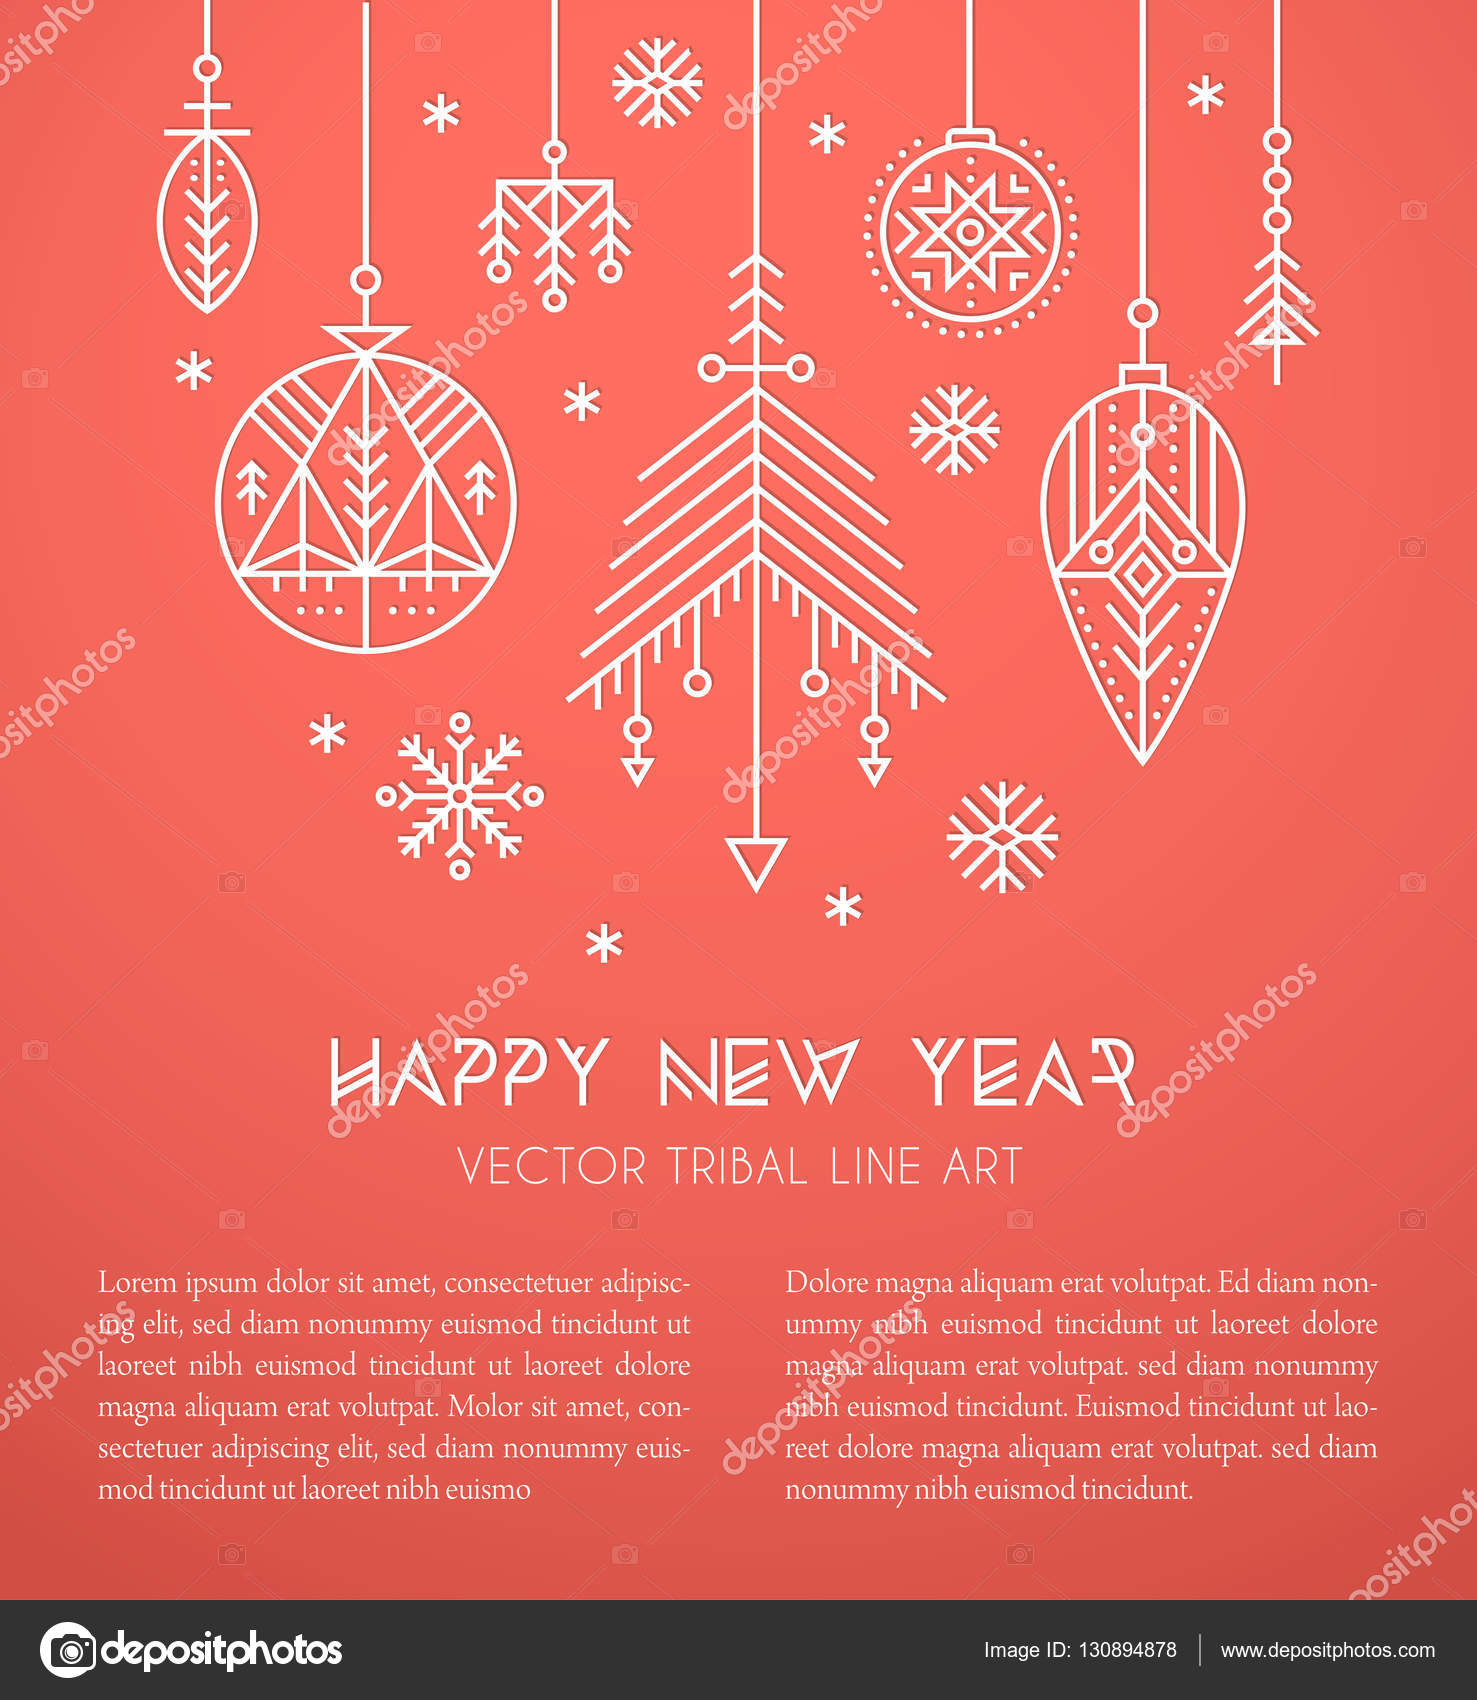 new year greeting card template with hanging decorations and snowflakes stock vector